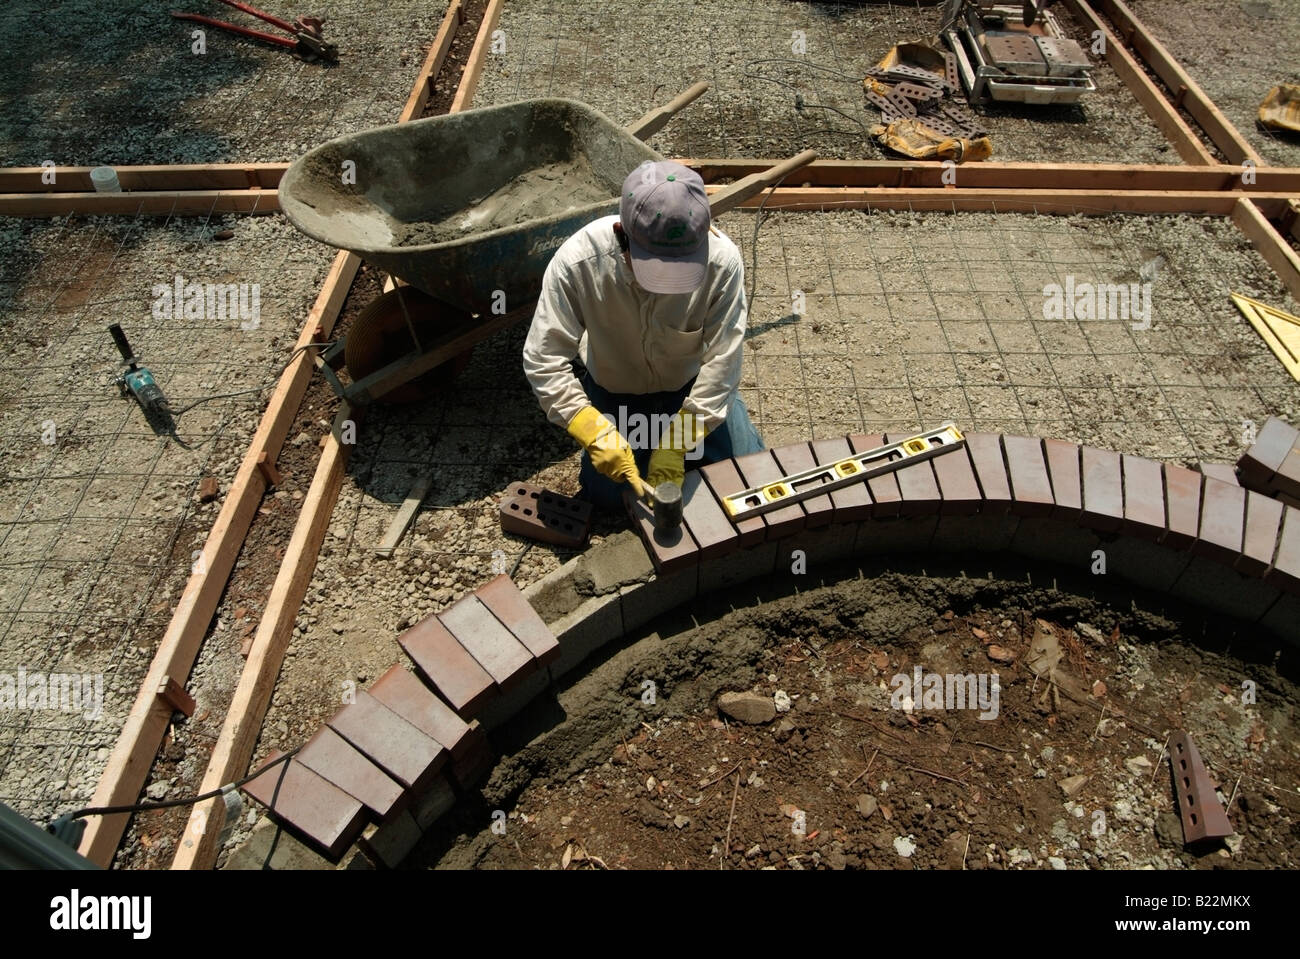 Workman leveling bricks to make a step to a backyard patio in Silicon Valley, California. - Stock Image